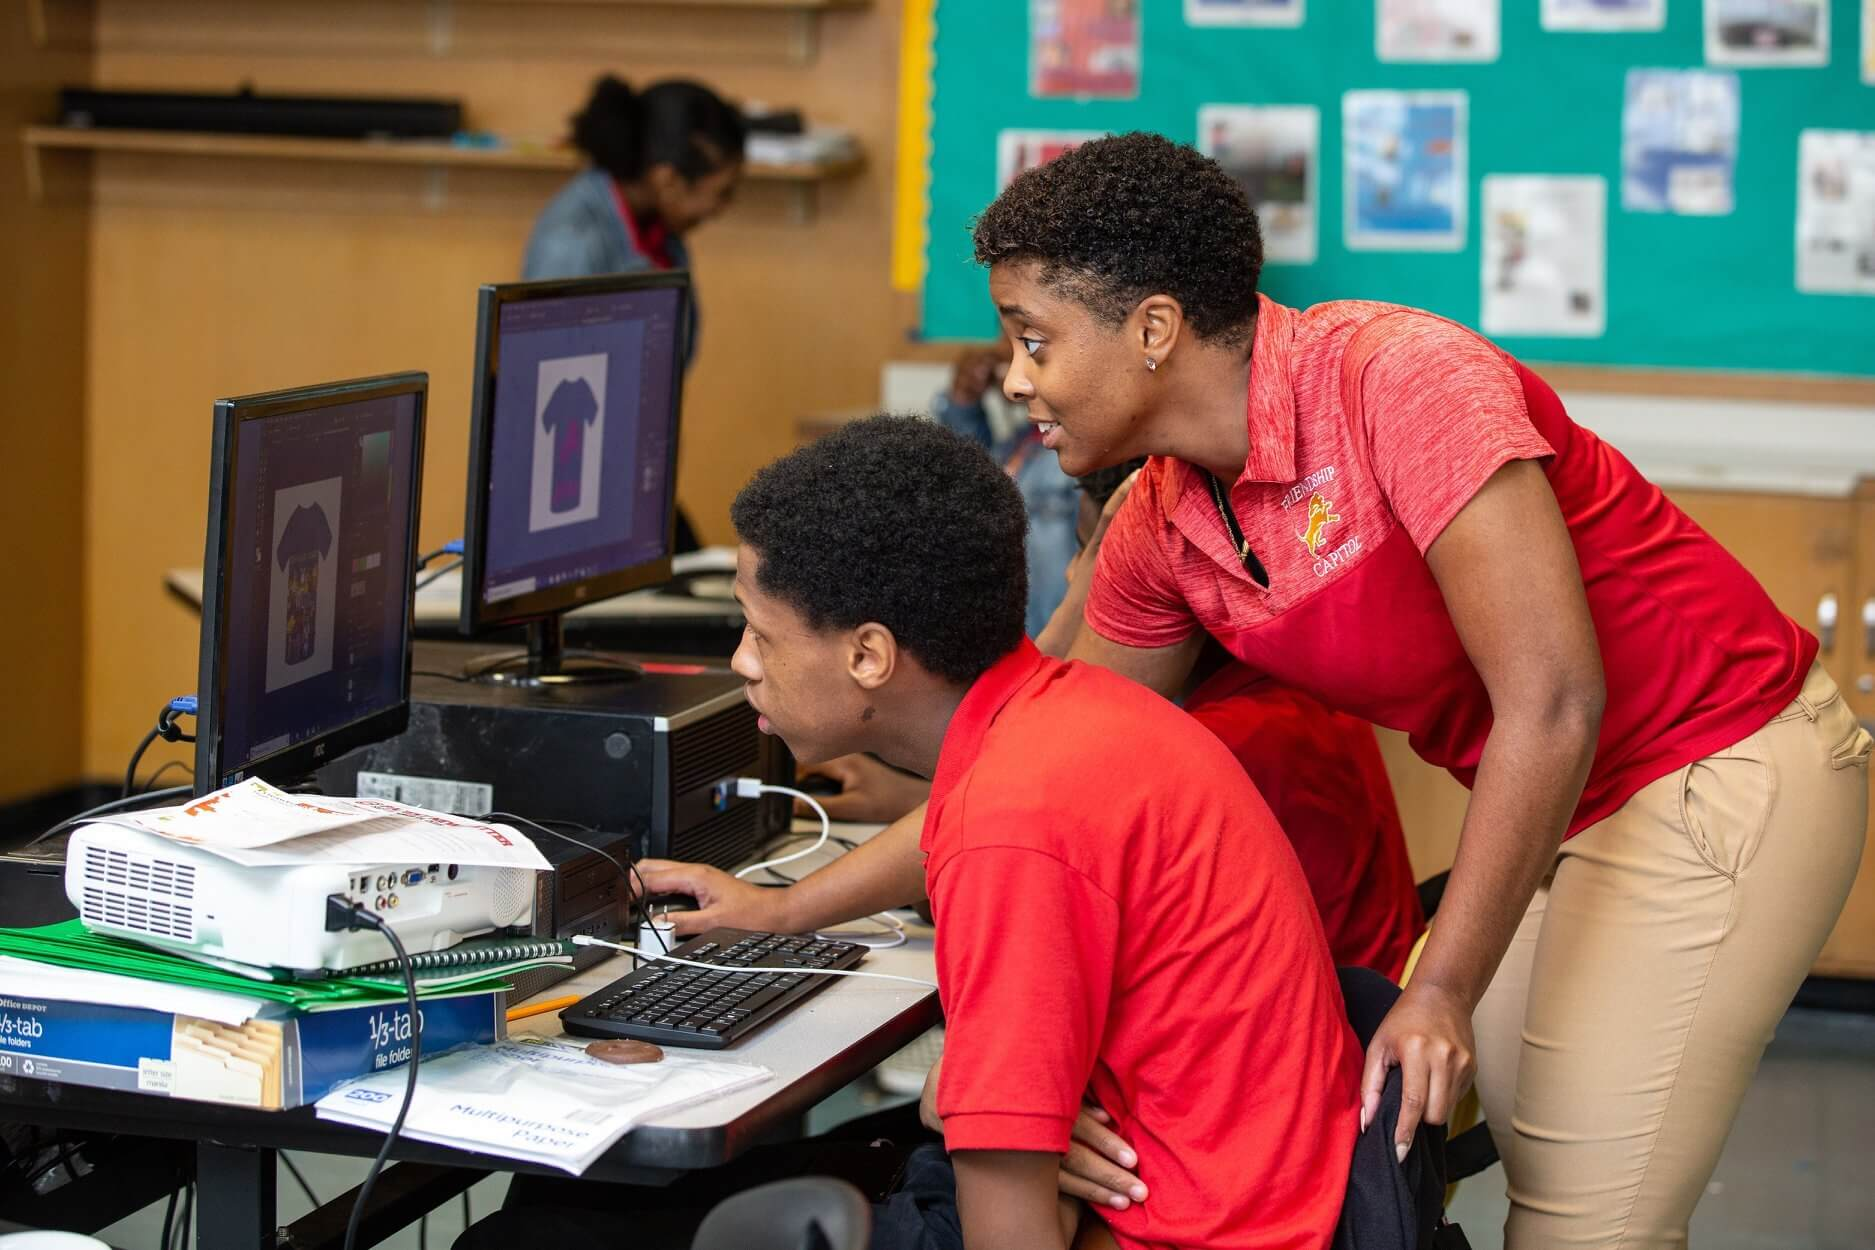 A teacher and student look at a computer as they collaborate on a t-shirt design project.